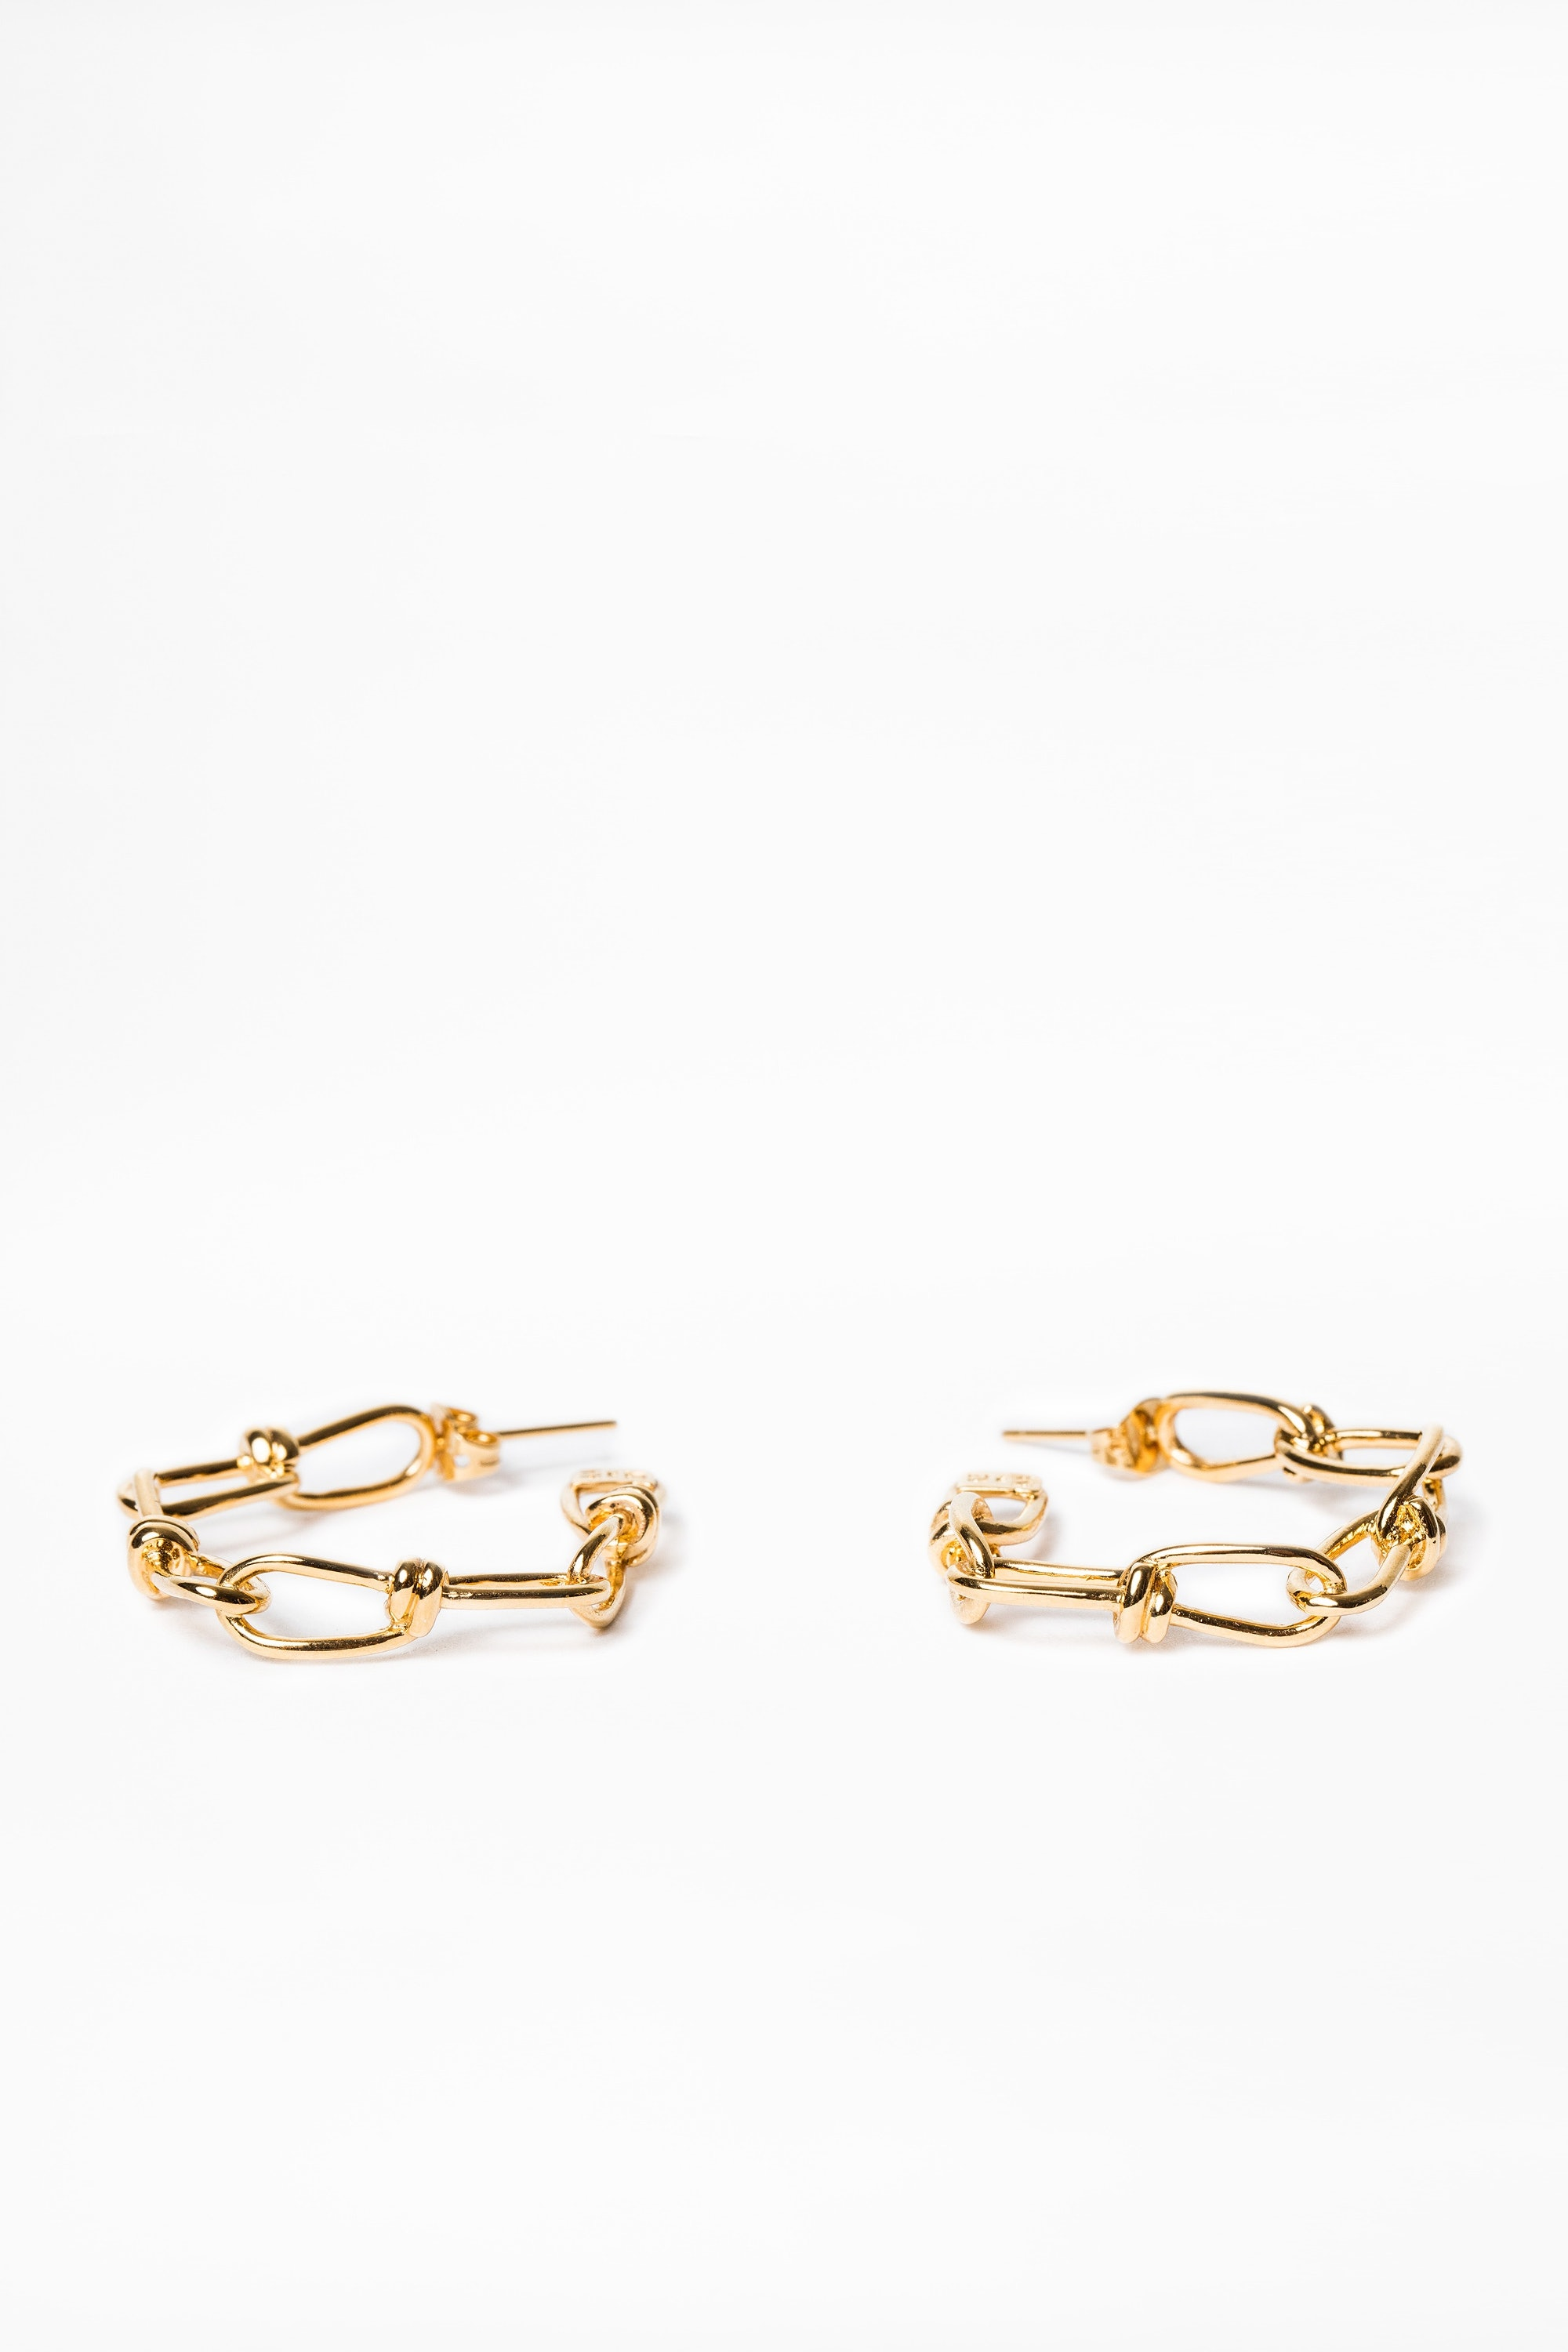 Zadig & Voltaire x AnneLise Michelson Ear-Rings